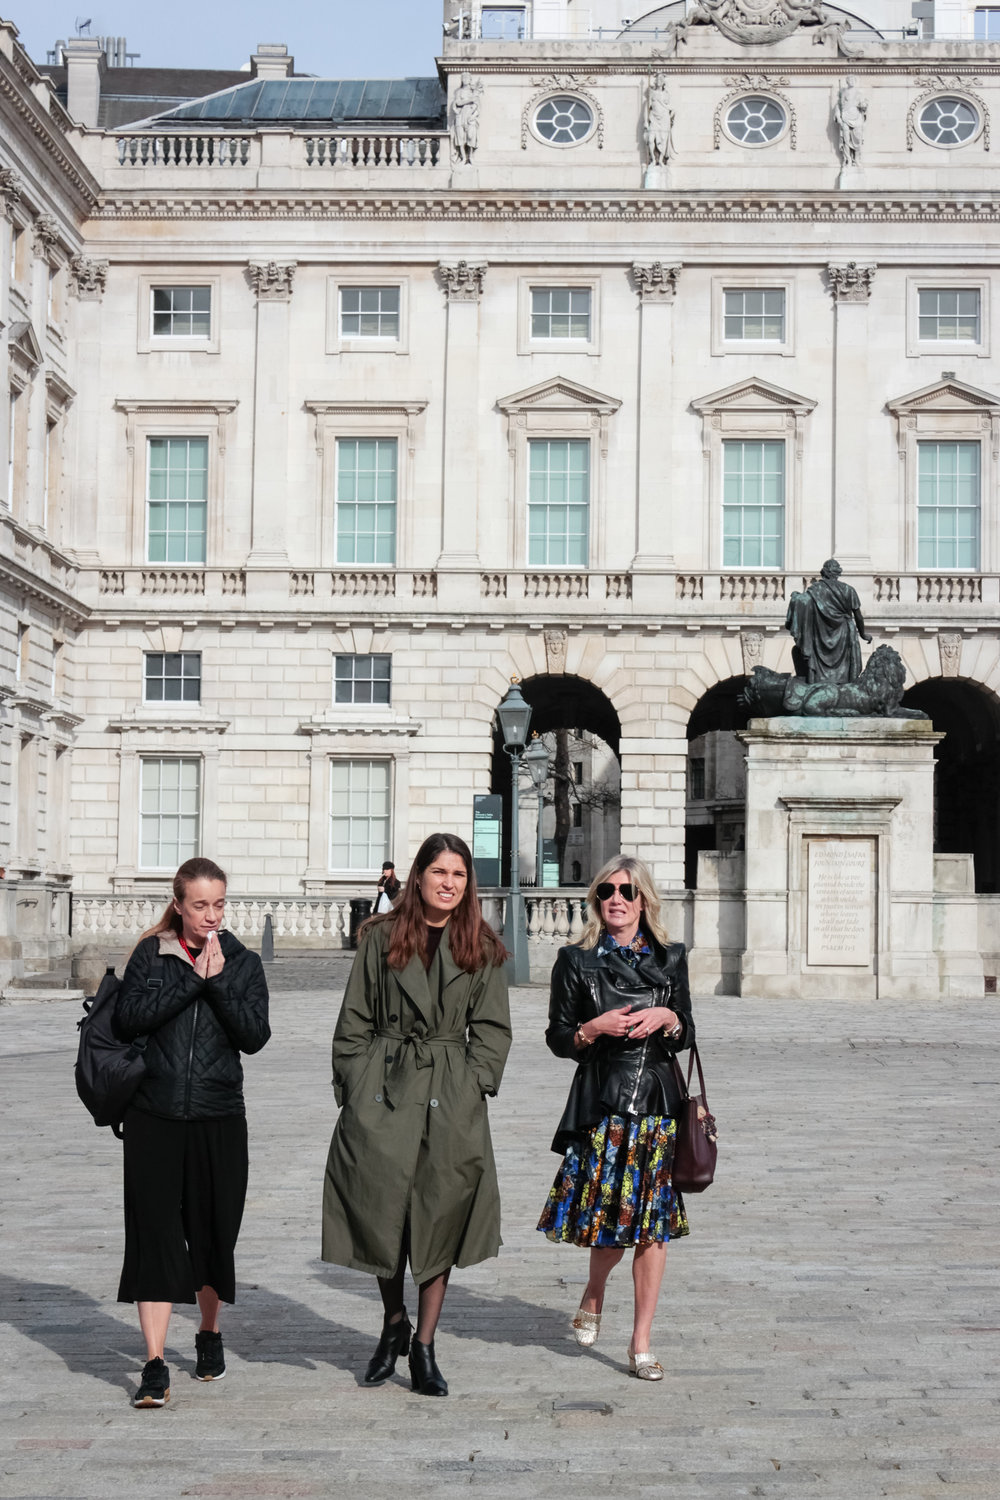 Jade Yesim Turanli, Marine Tanguy & Sigrid Kirk  The Association of Women in the Arts, Galerie Thaddaeus Ropac, Somerset House, 2018